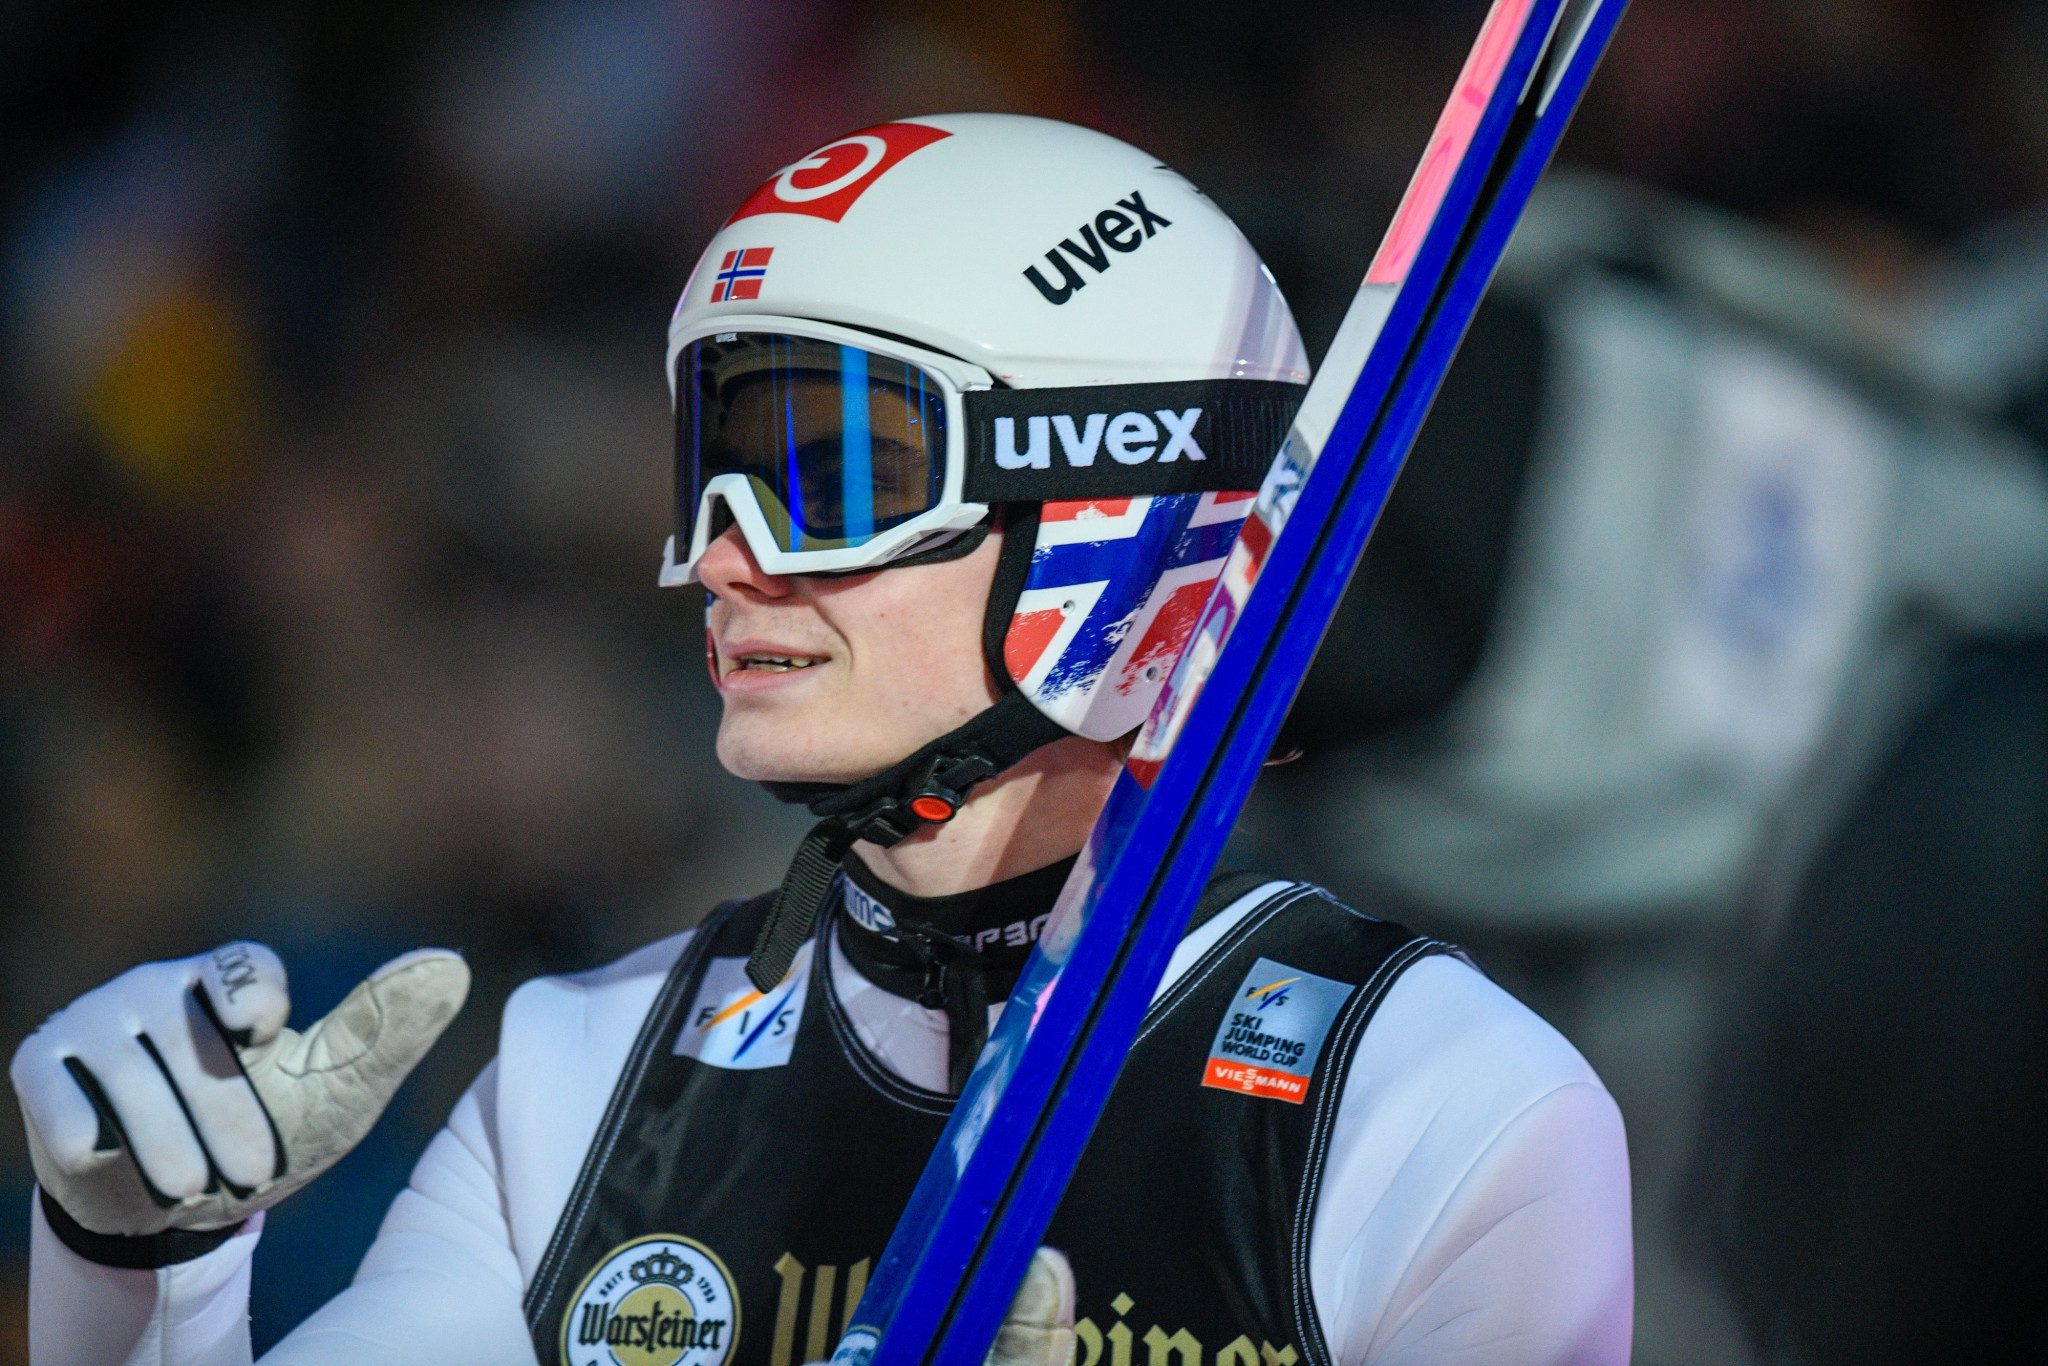 Norway win team gold at home FIS Ski Jumping World Cup